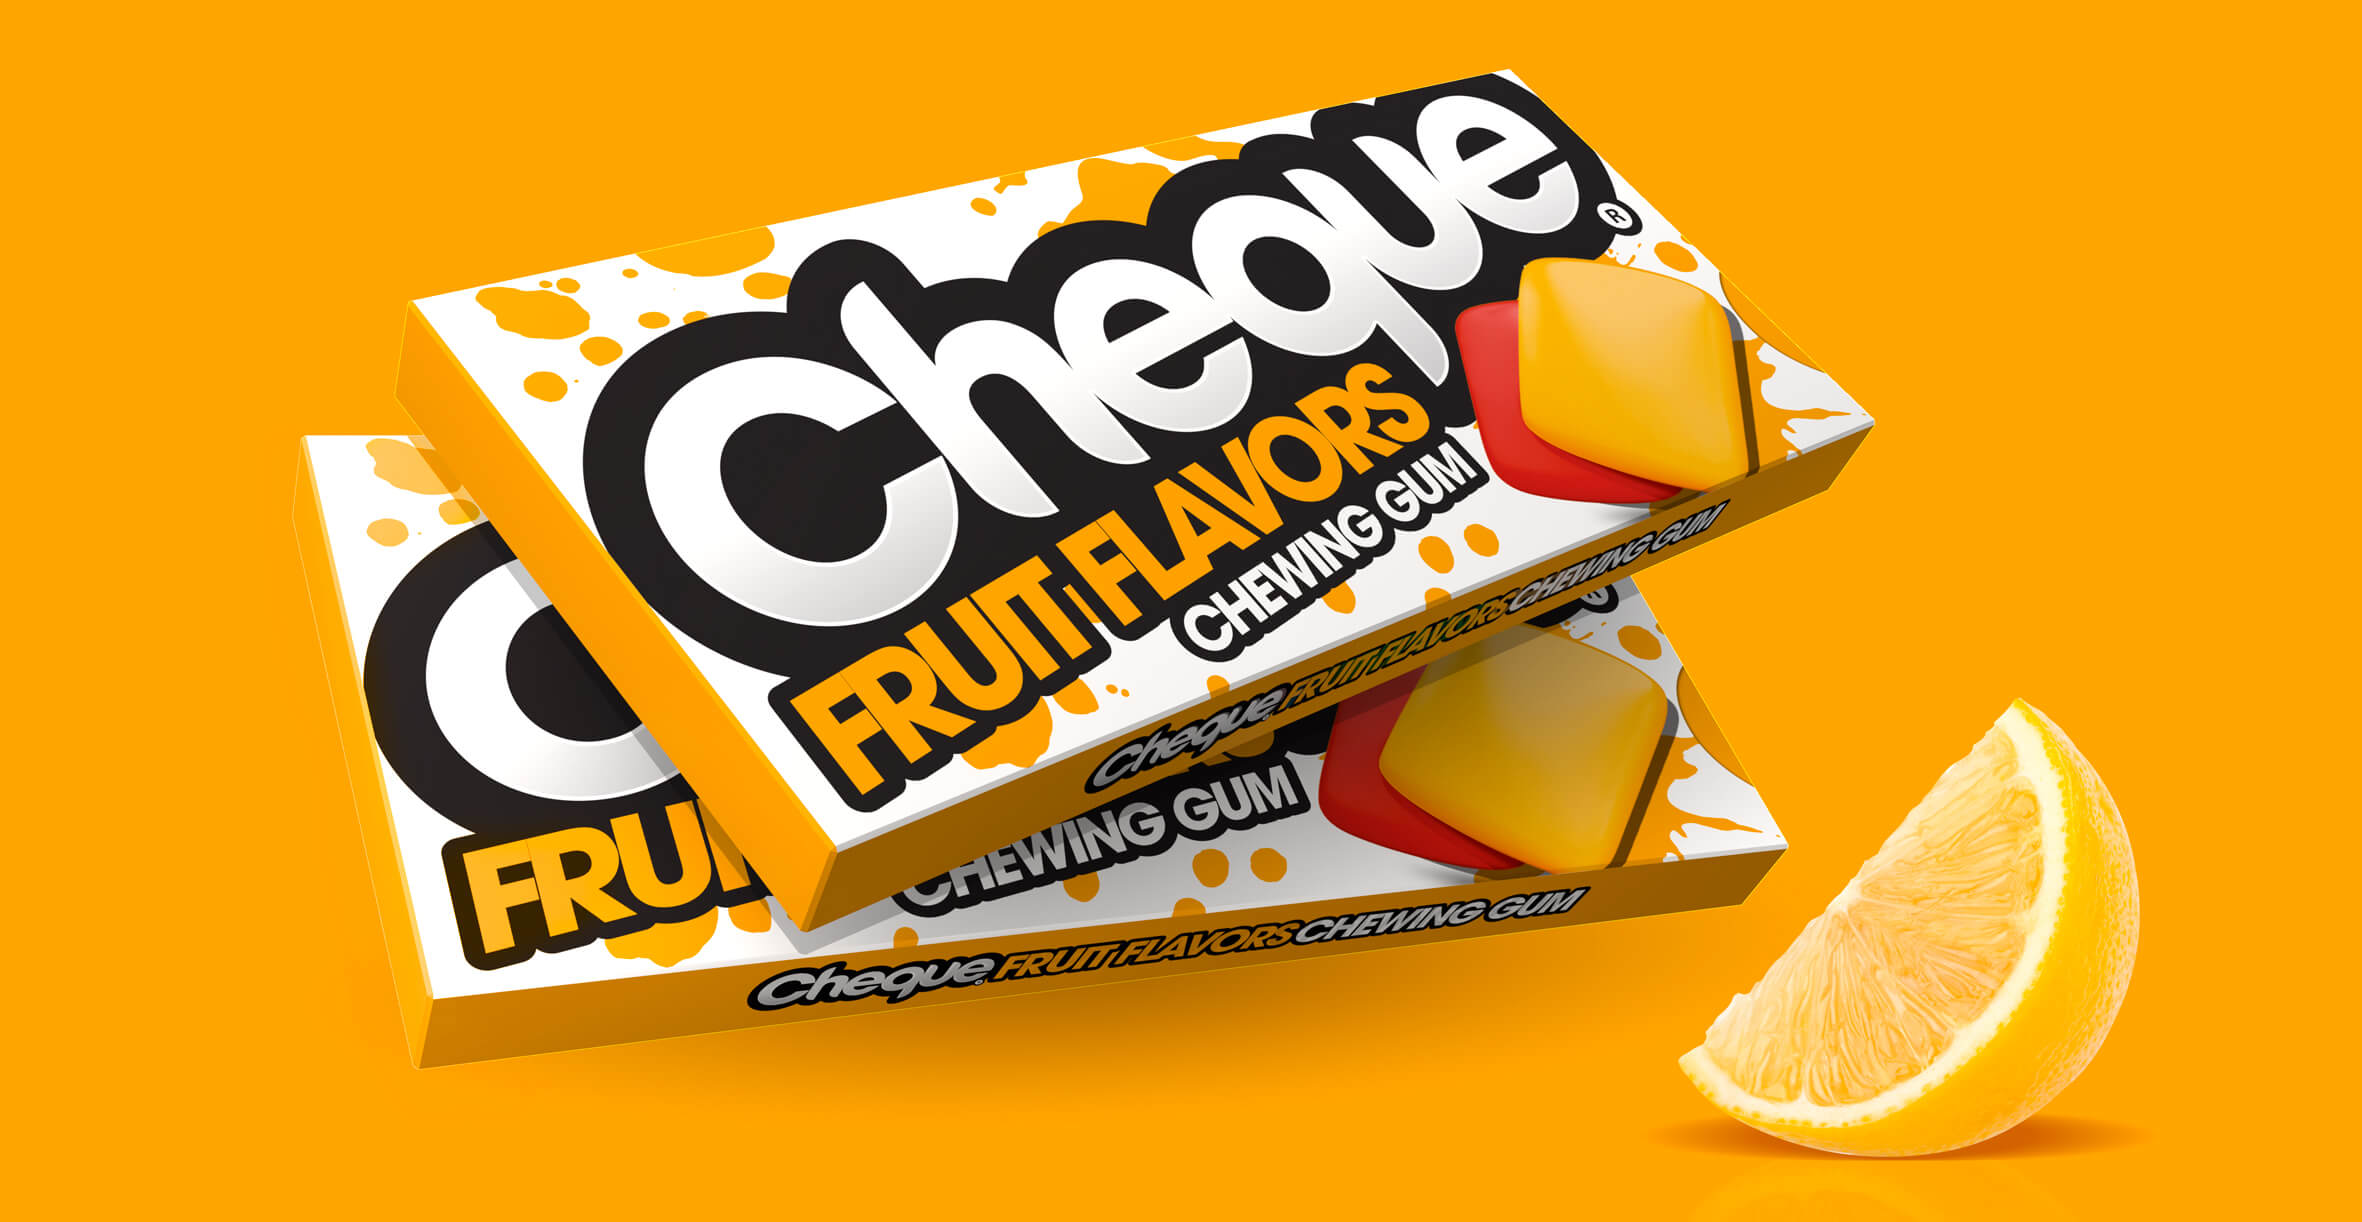 Branding and Packaging Design for Confectionary Brand Cheque Gum - Fruit Flavours Pack Carton Design